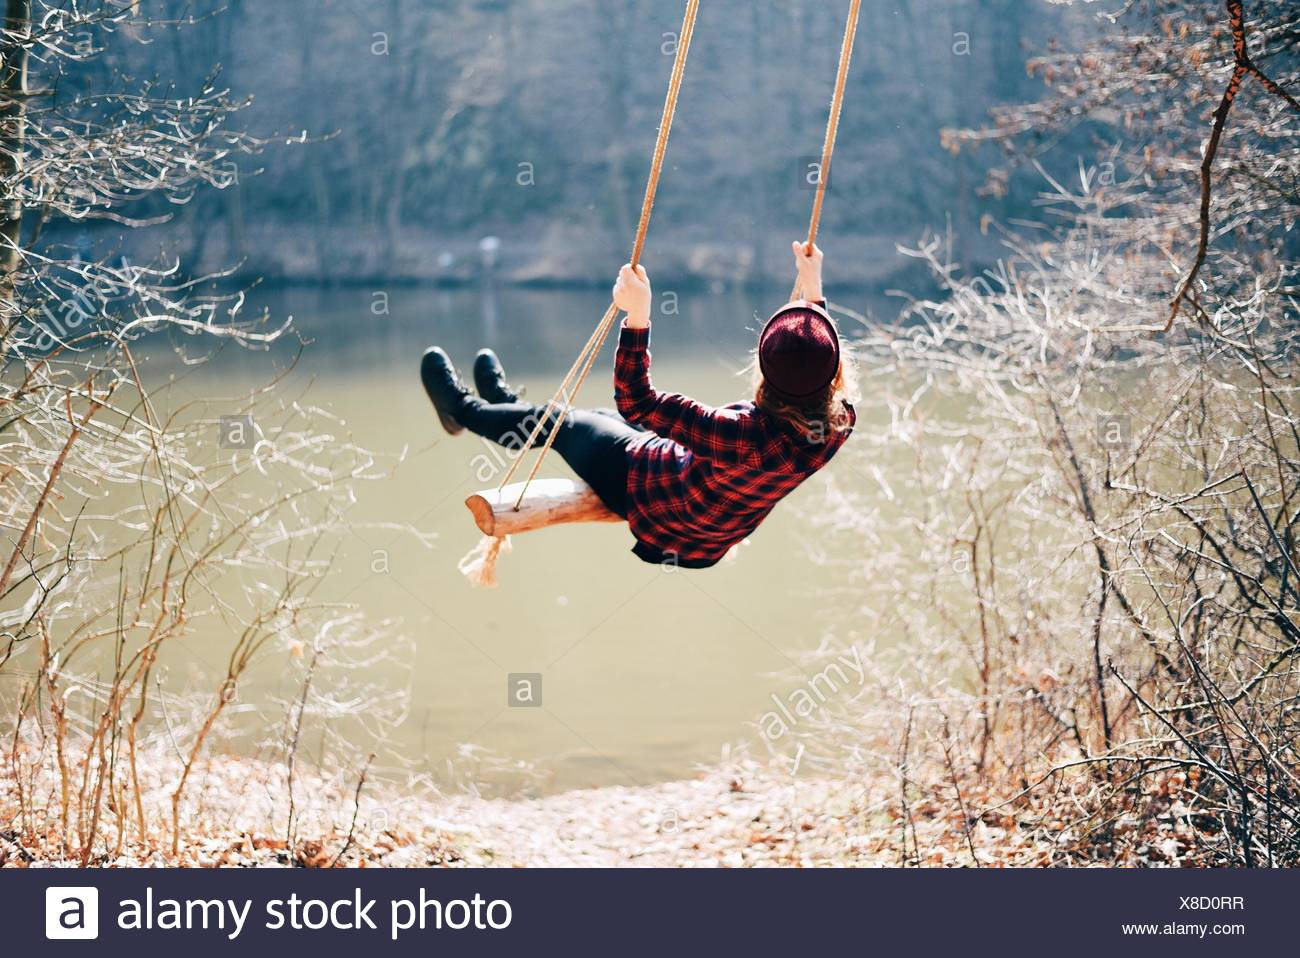 Rear View Of A Girl Swinging Against Calm Lake - Stock Image